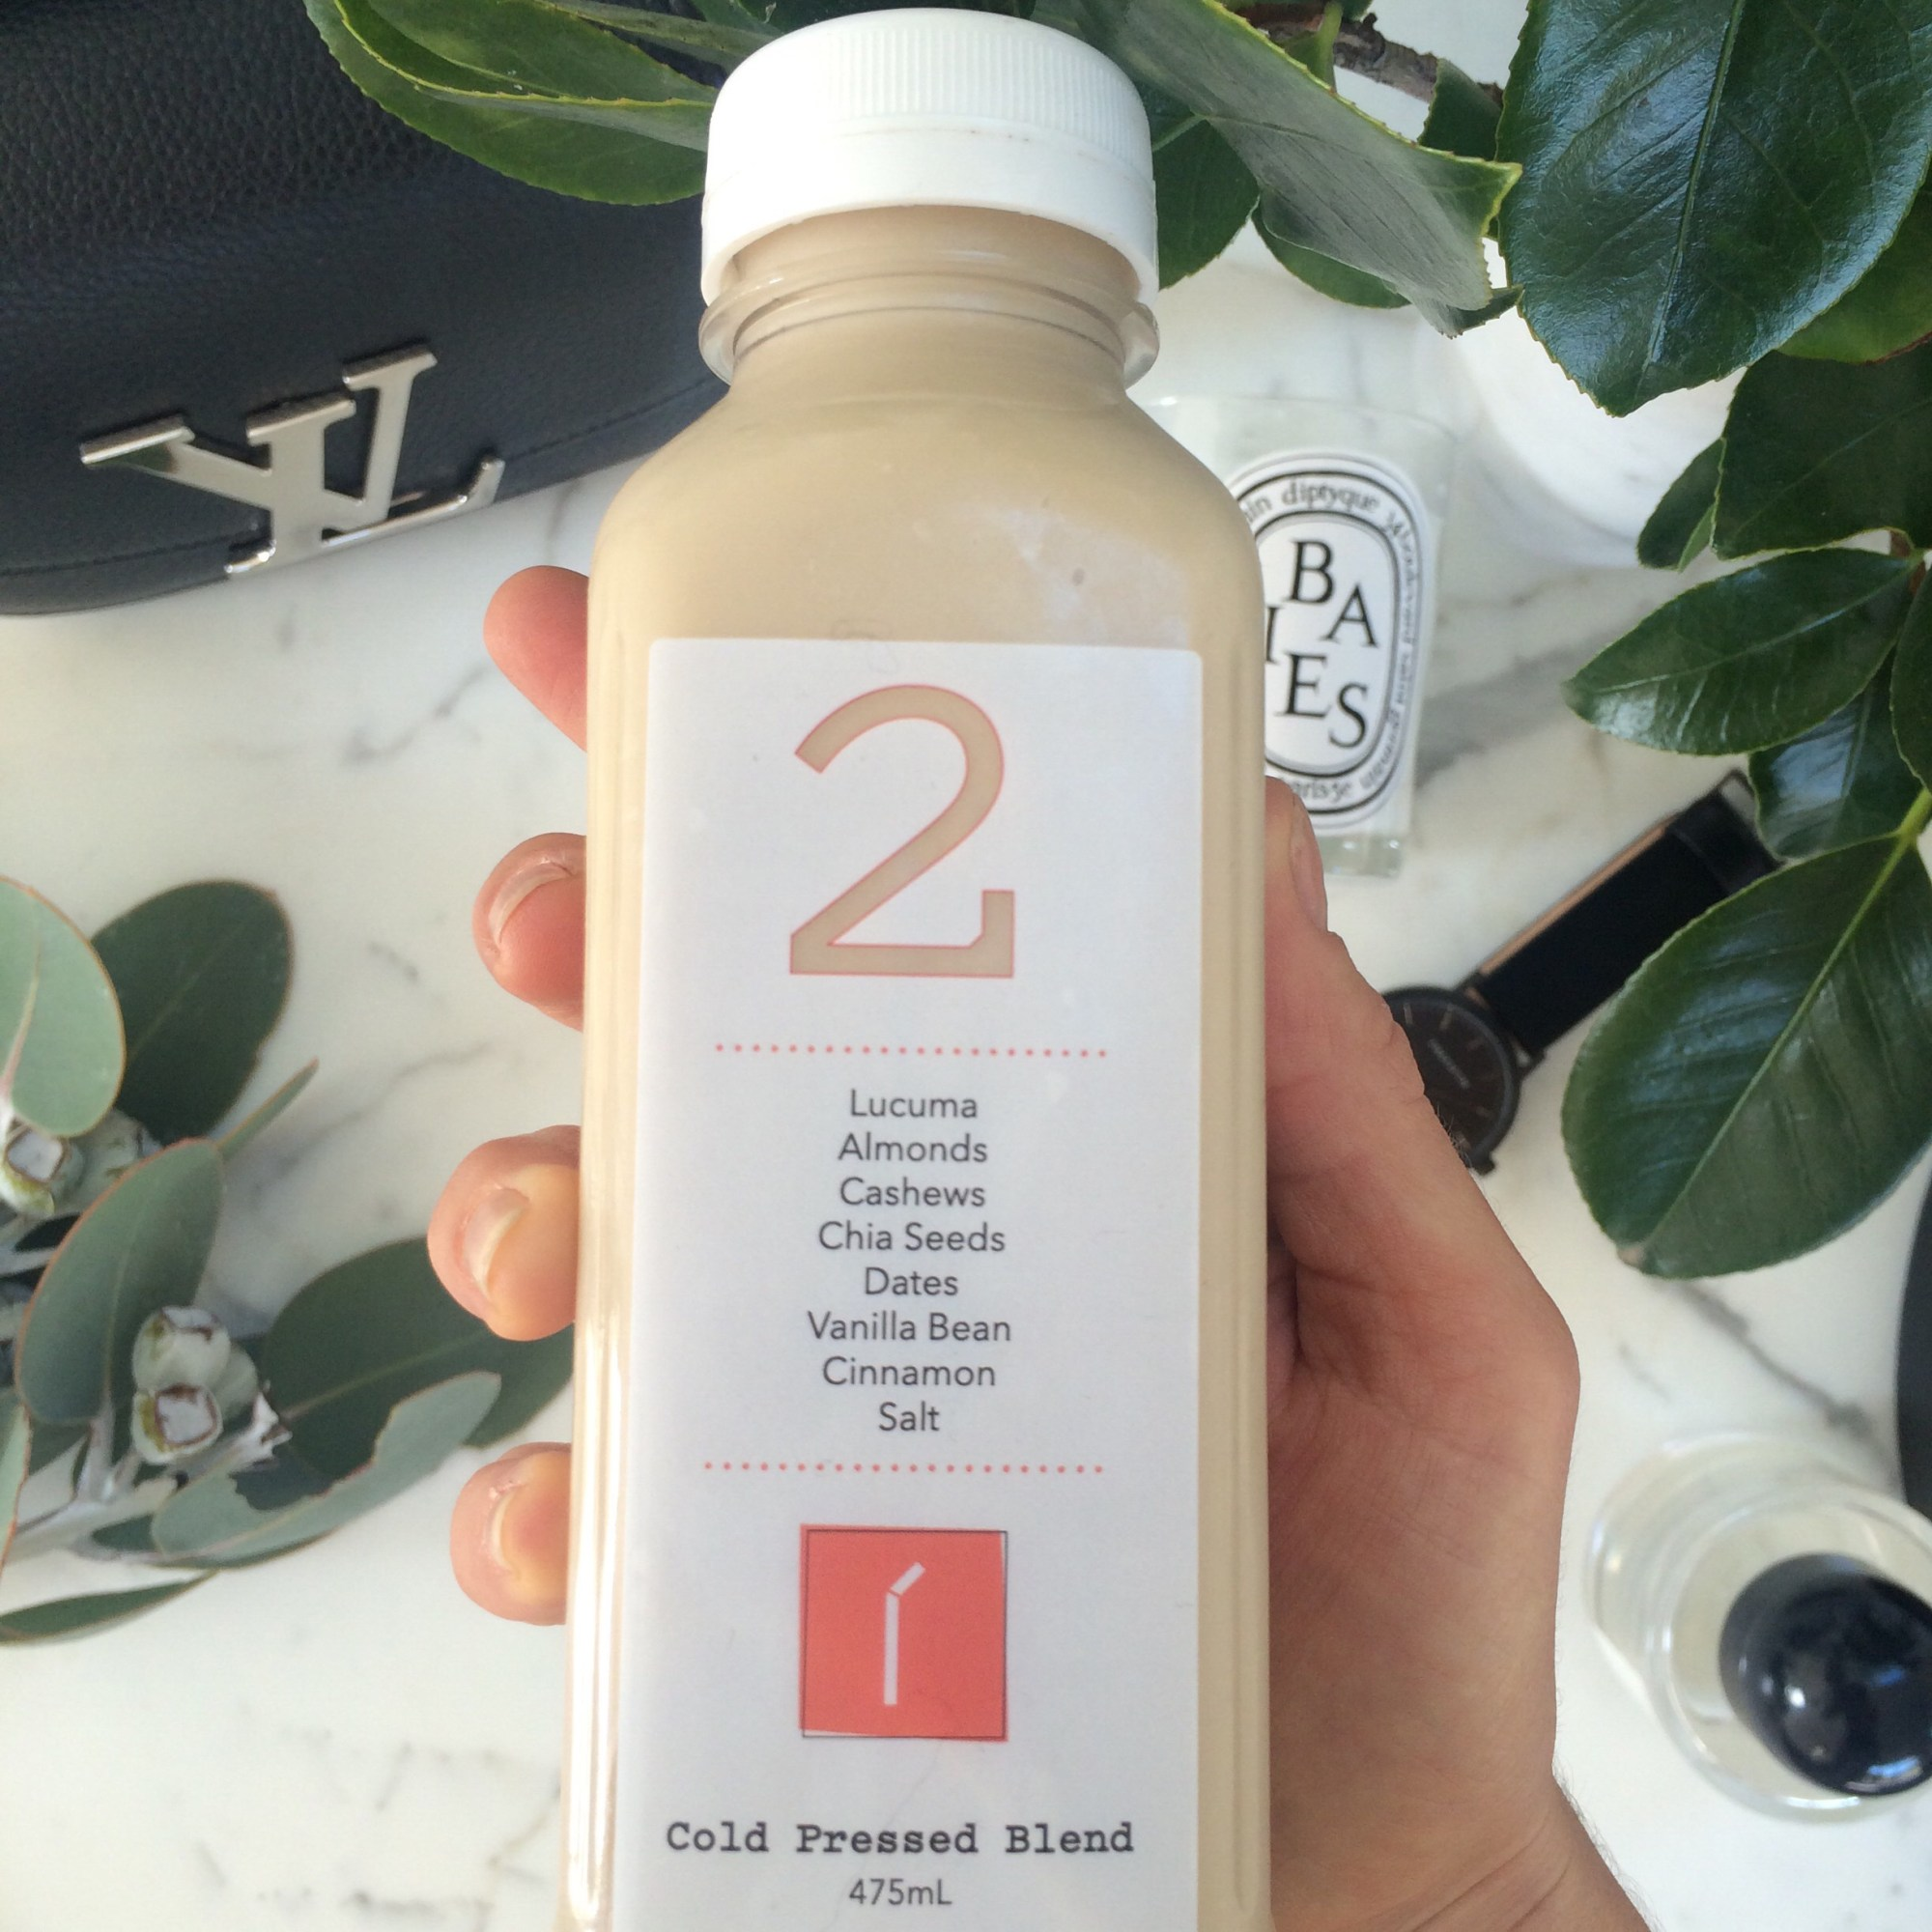 blendco cold pressed 3 day detox juice cleanse melbourne 2